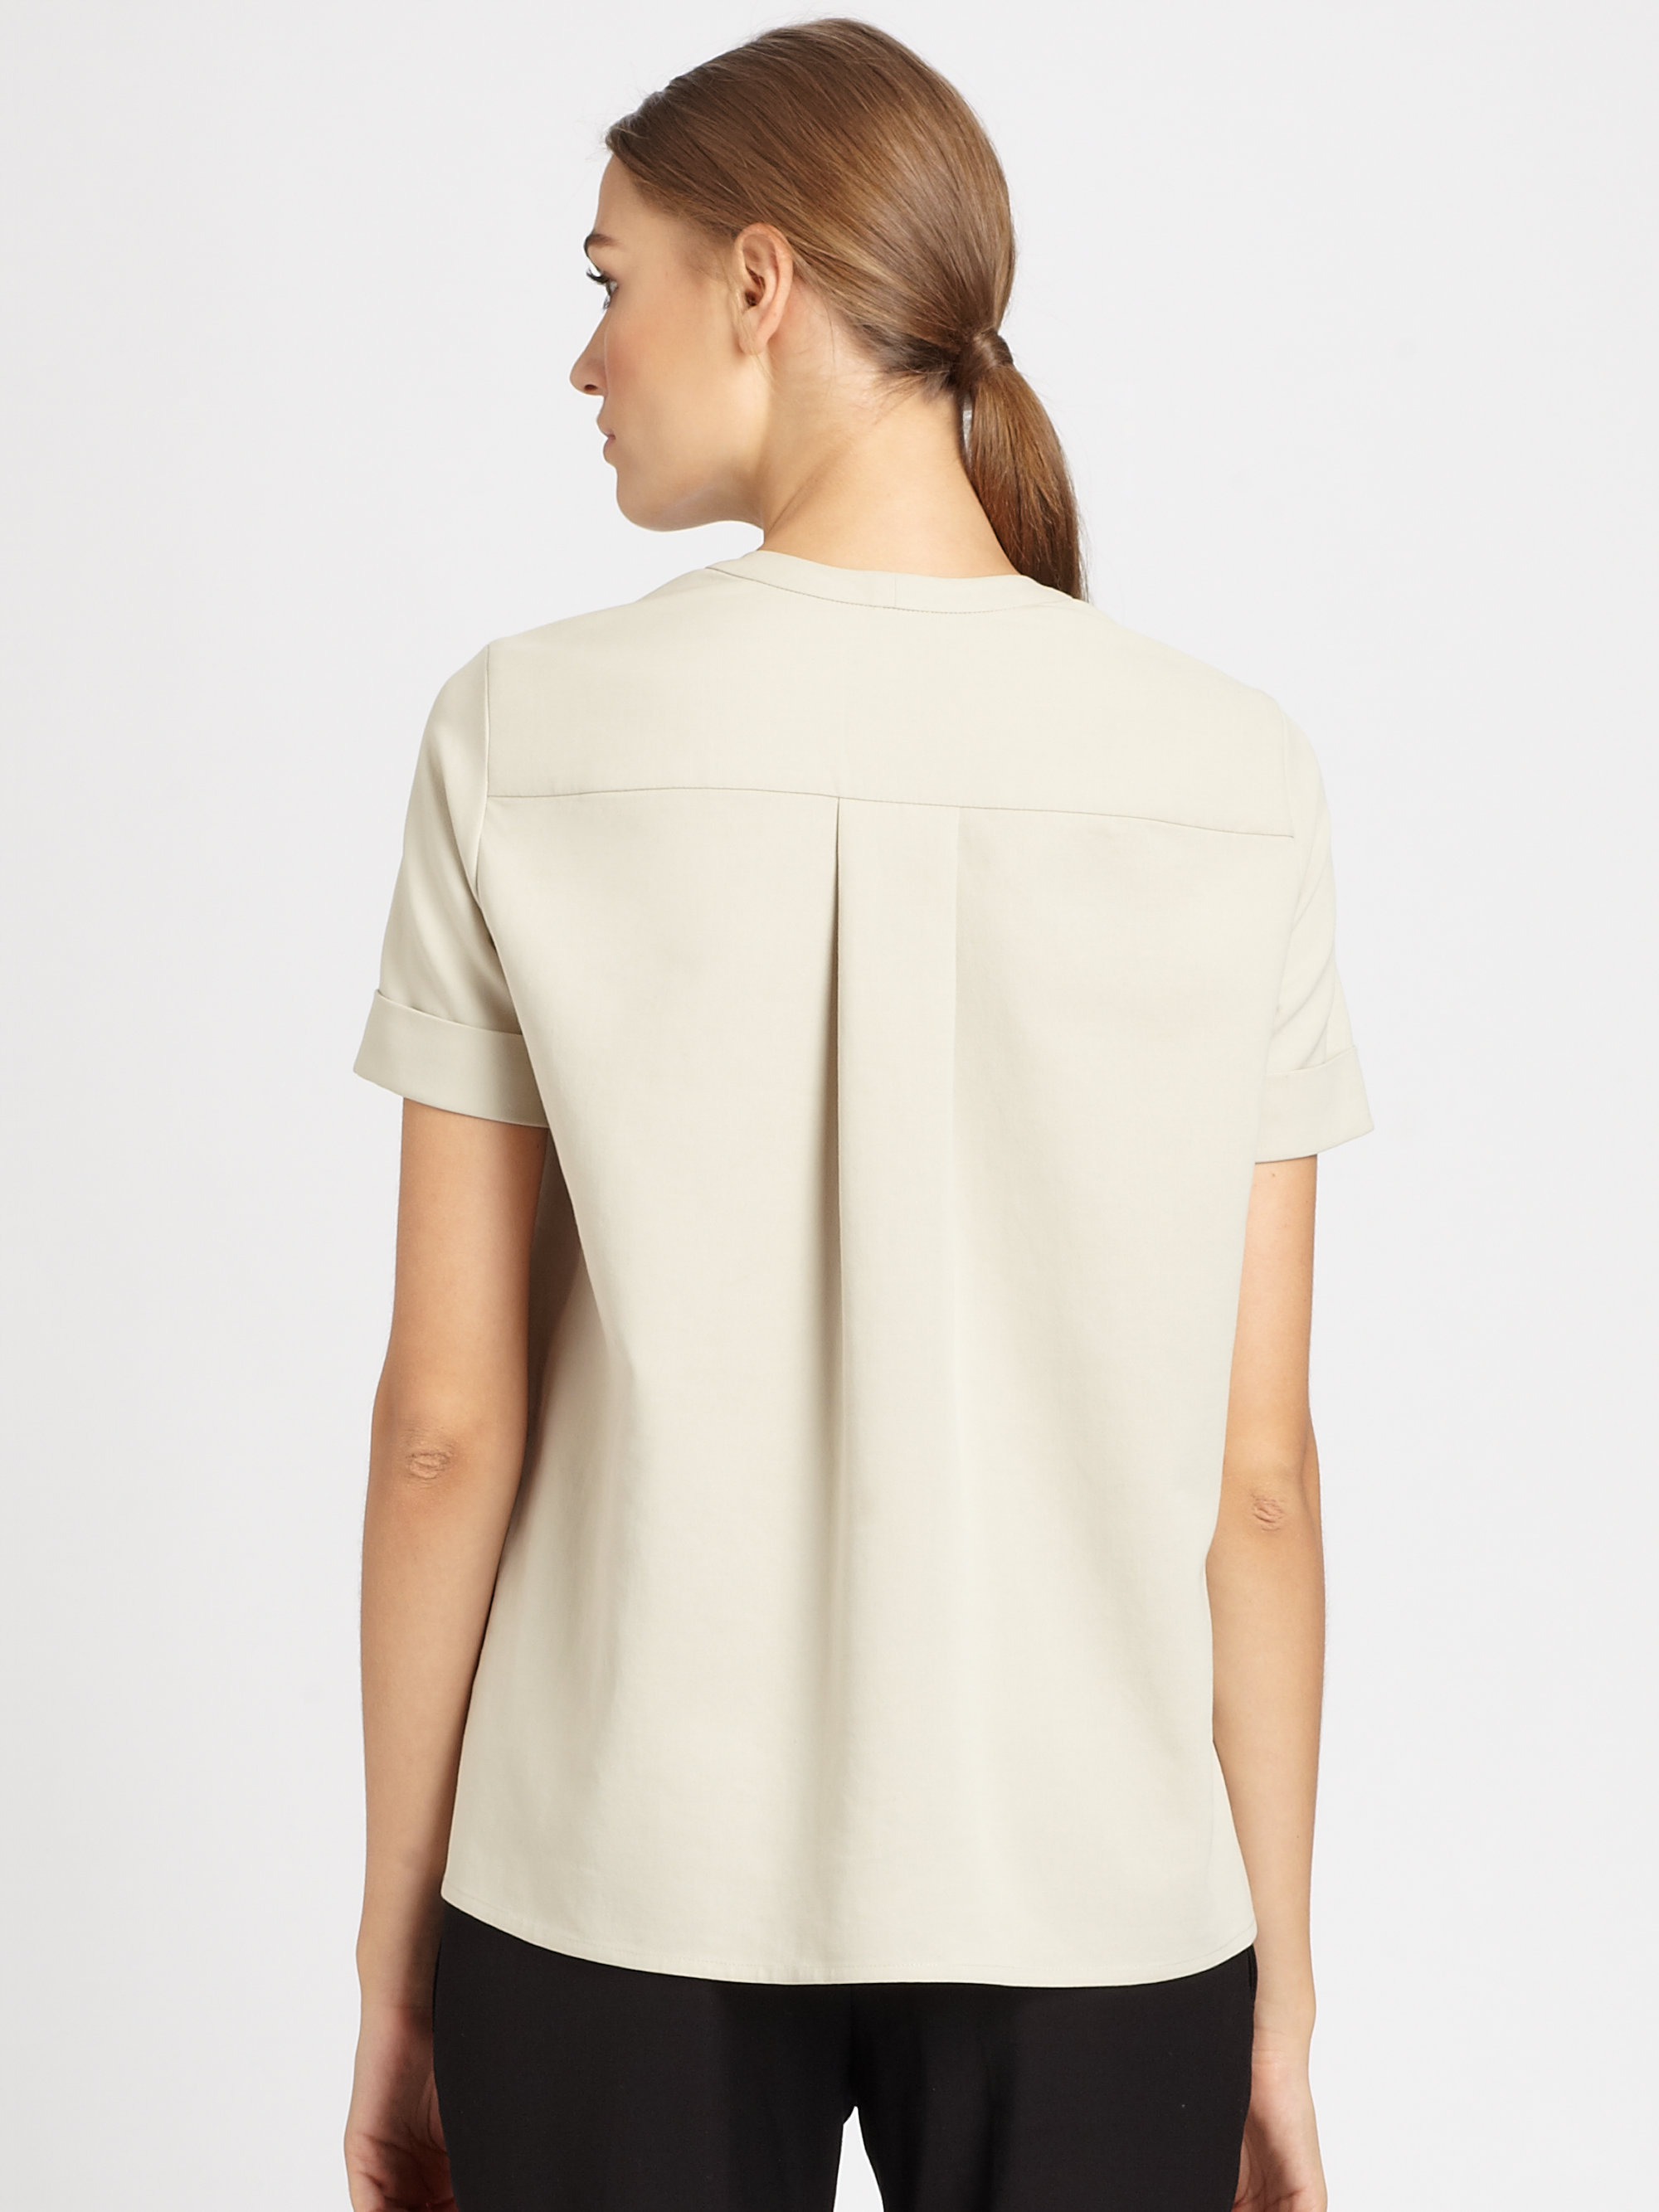 White Tie Back Overshirt Christophe Lemaire Exclusive Free Shipping Countdown Package Buy Cheap Inexpensive Discount Recommend GHqky